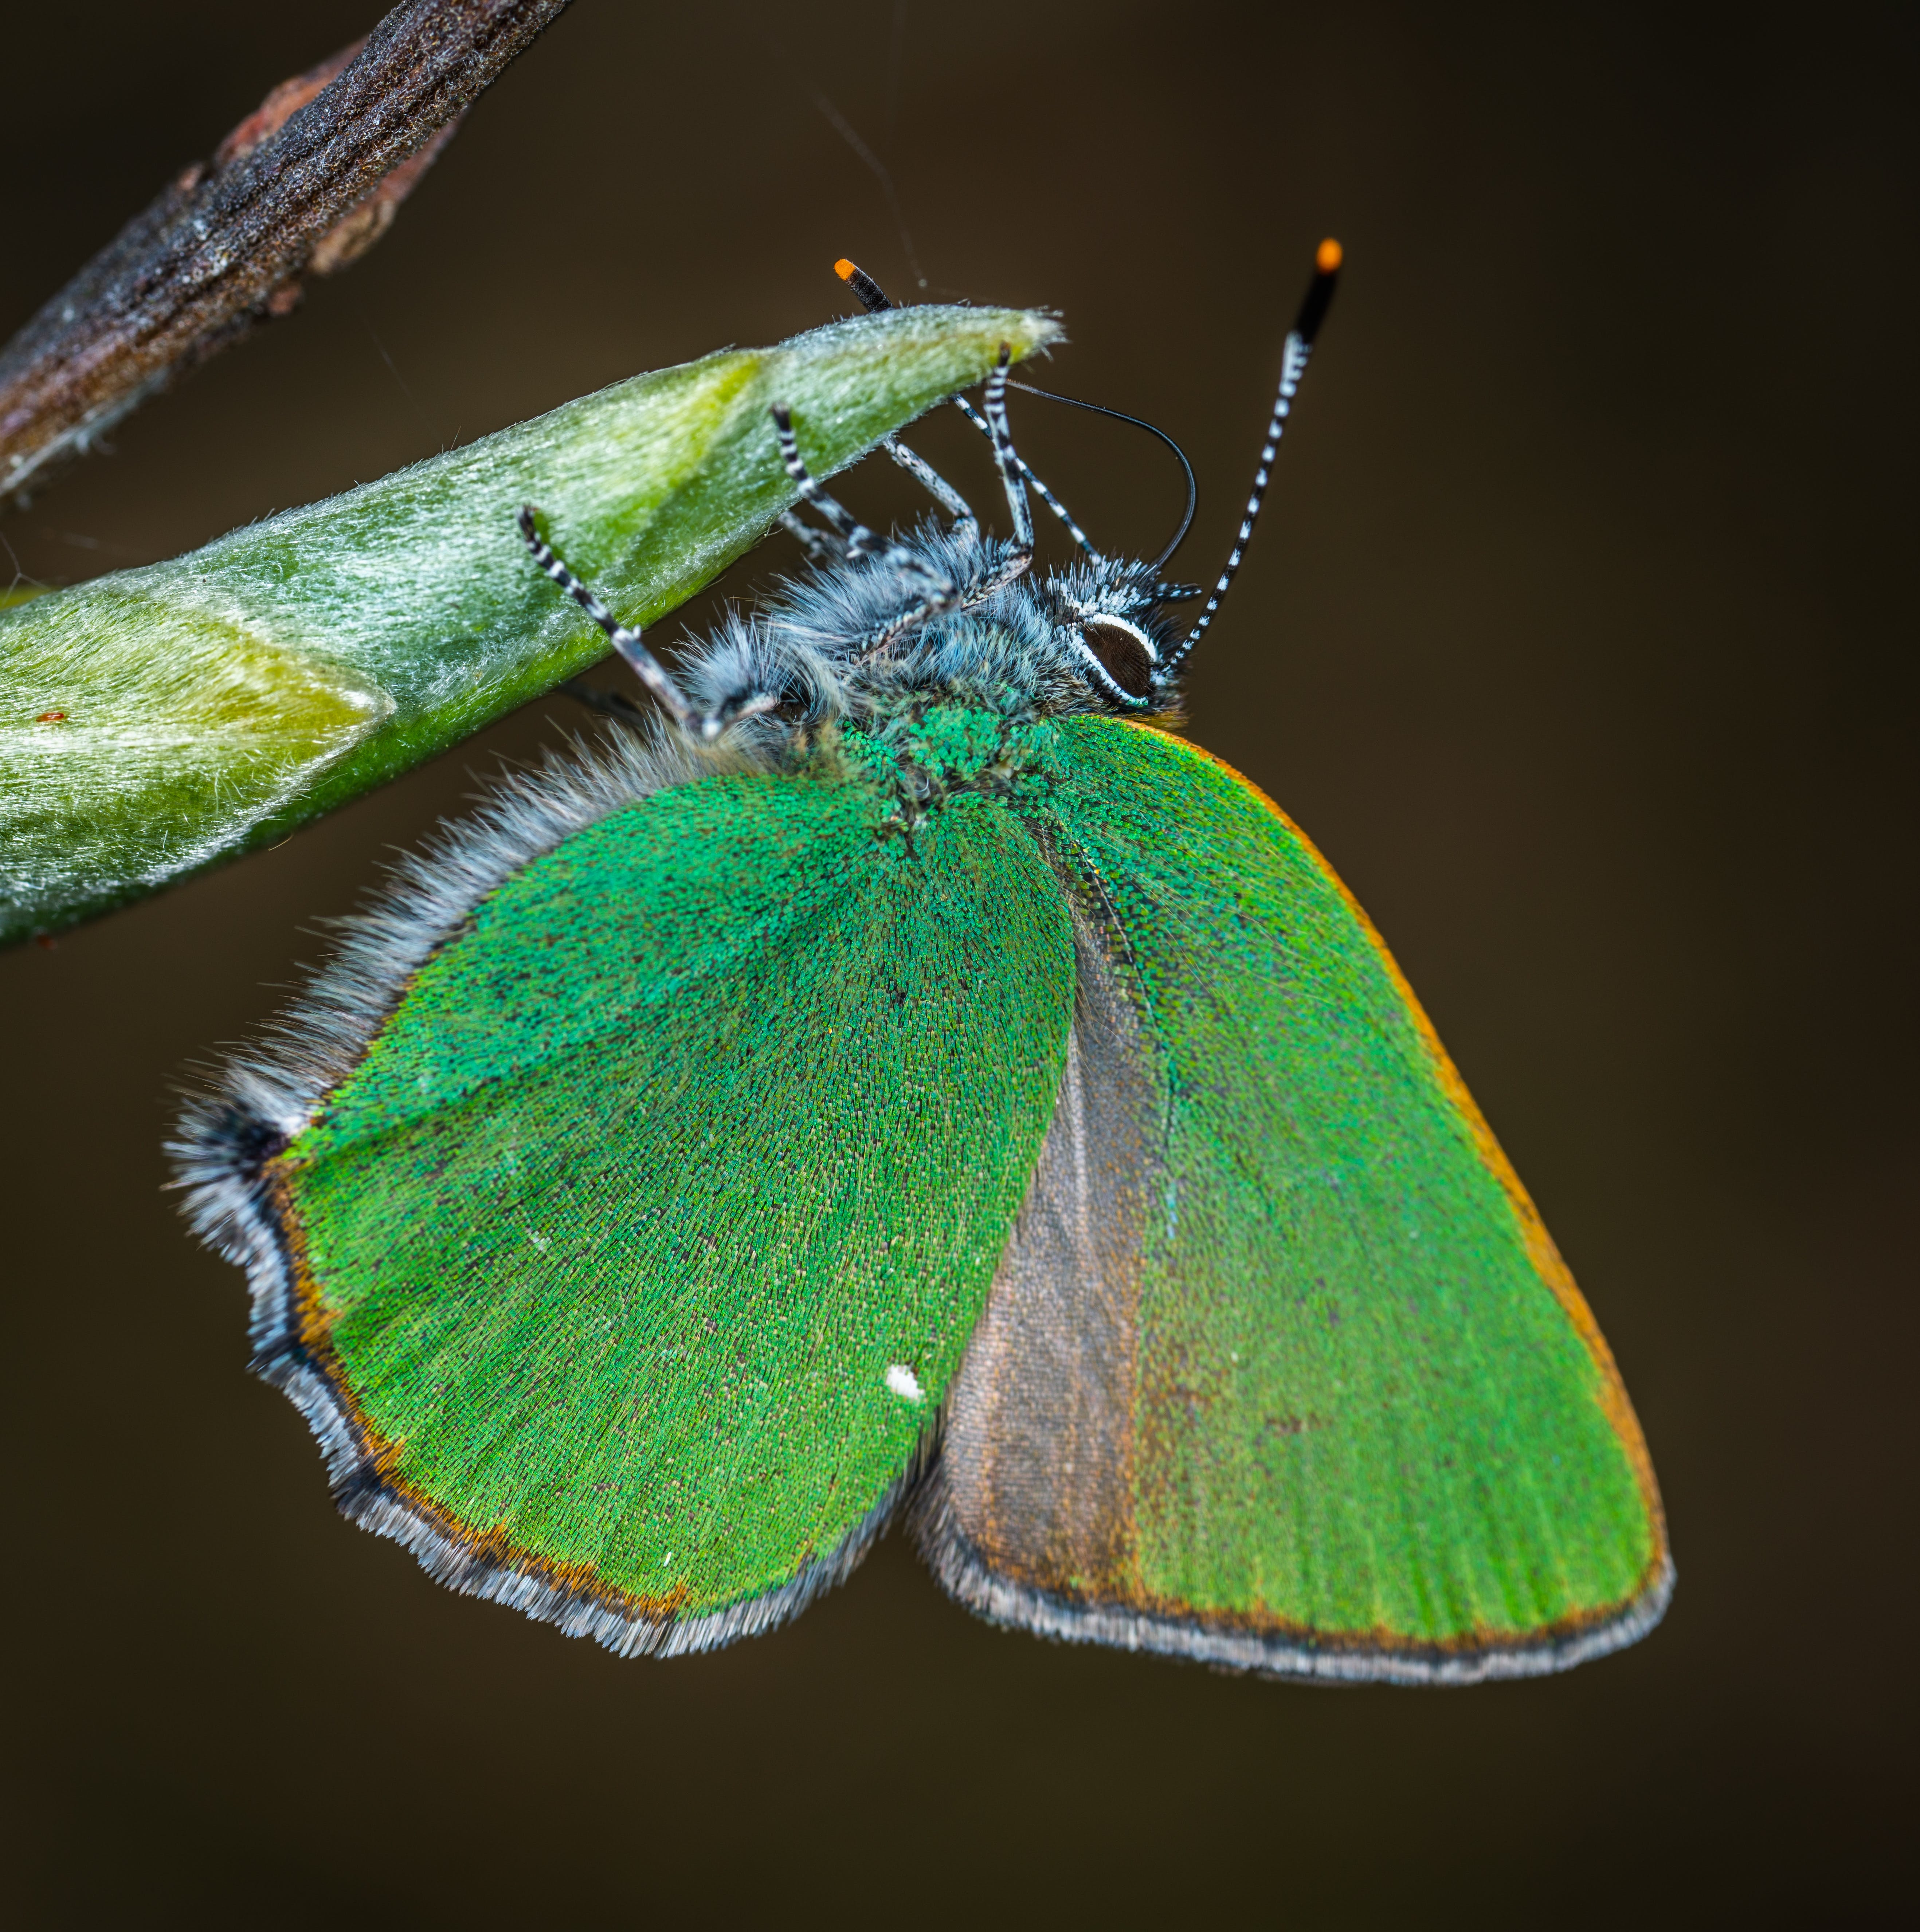 Closeup Photography of Green and Brown Moth Perched on Green Leaf